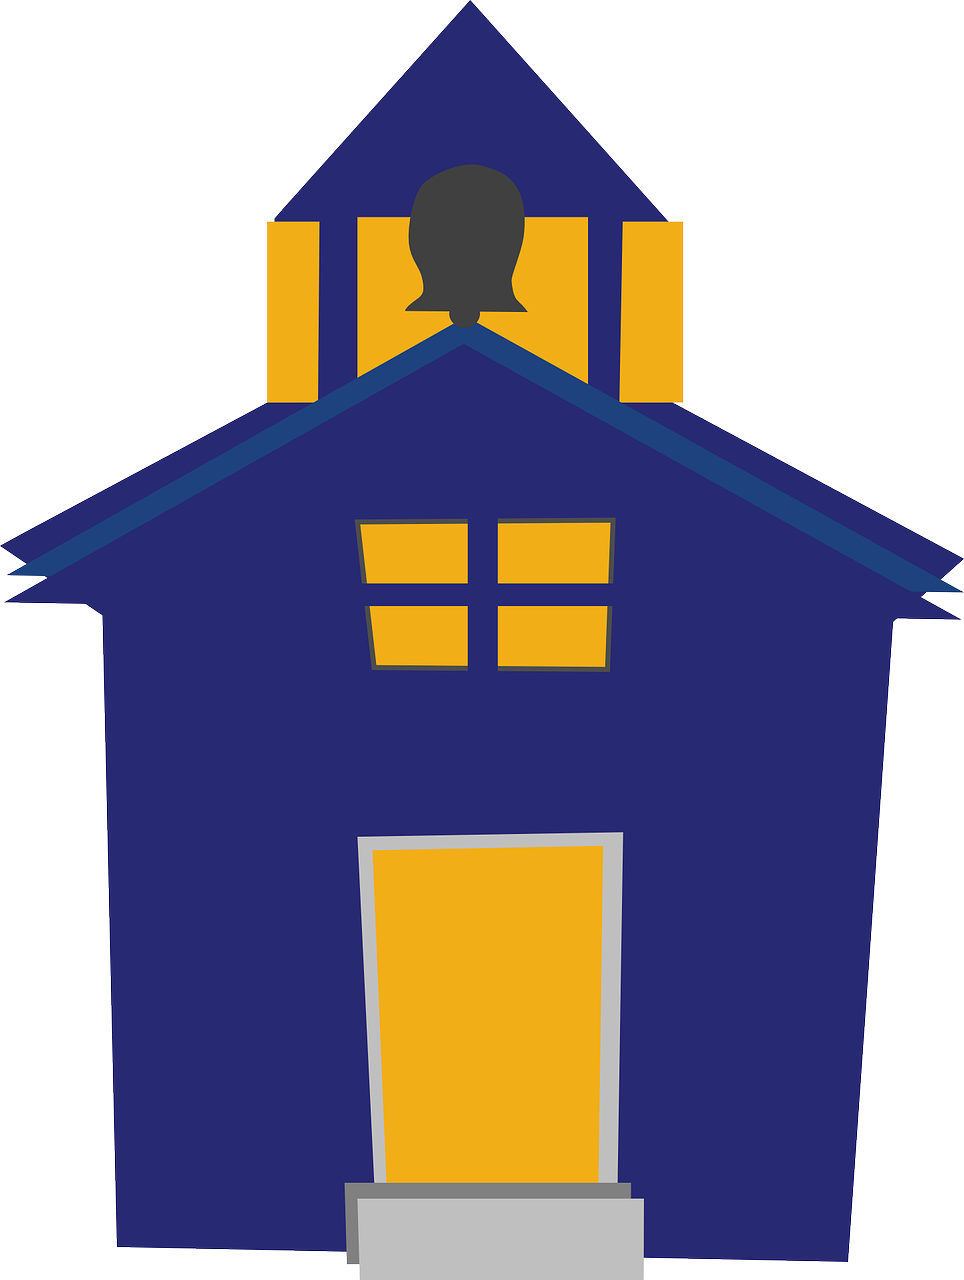 Preschool house clipart graphic royalty free library University building clipart png - ClipartFest graphic royalty free library